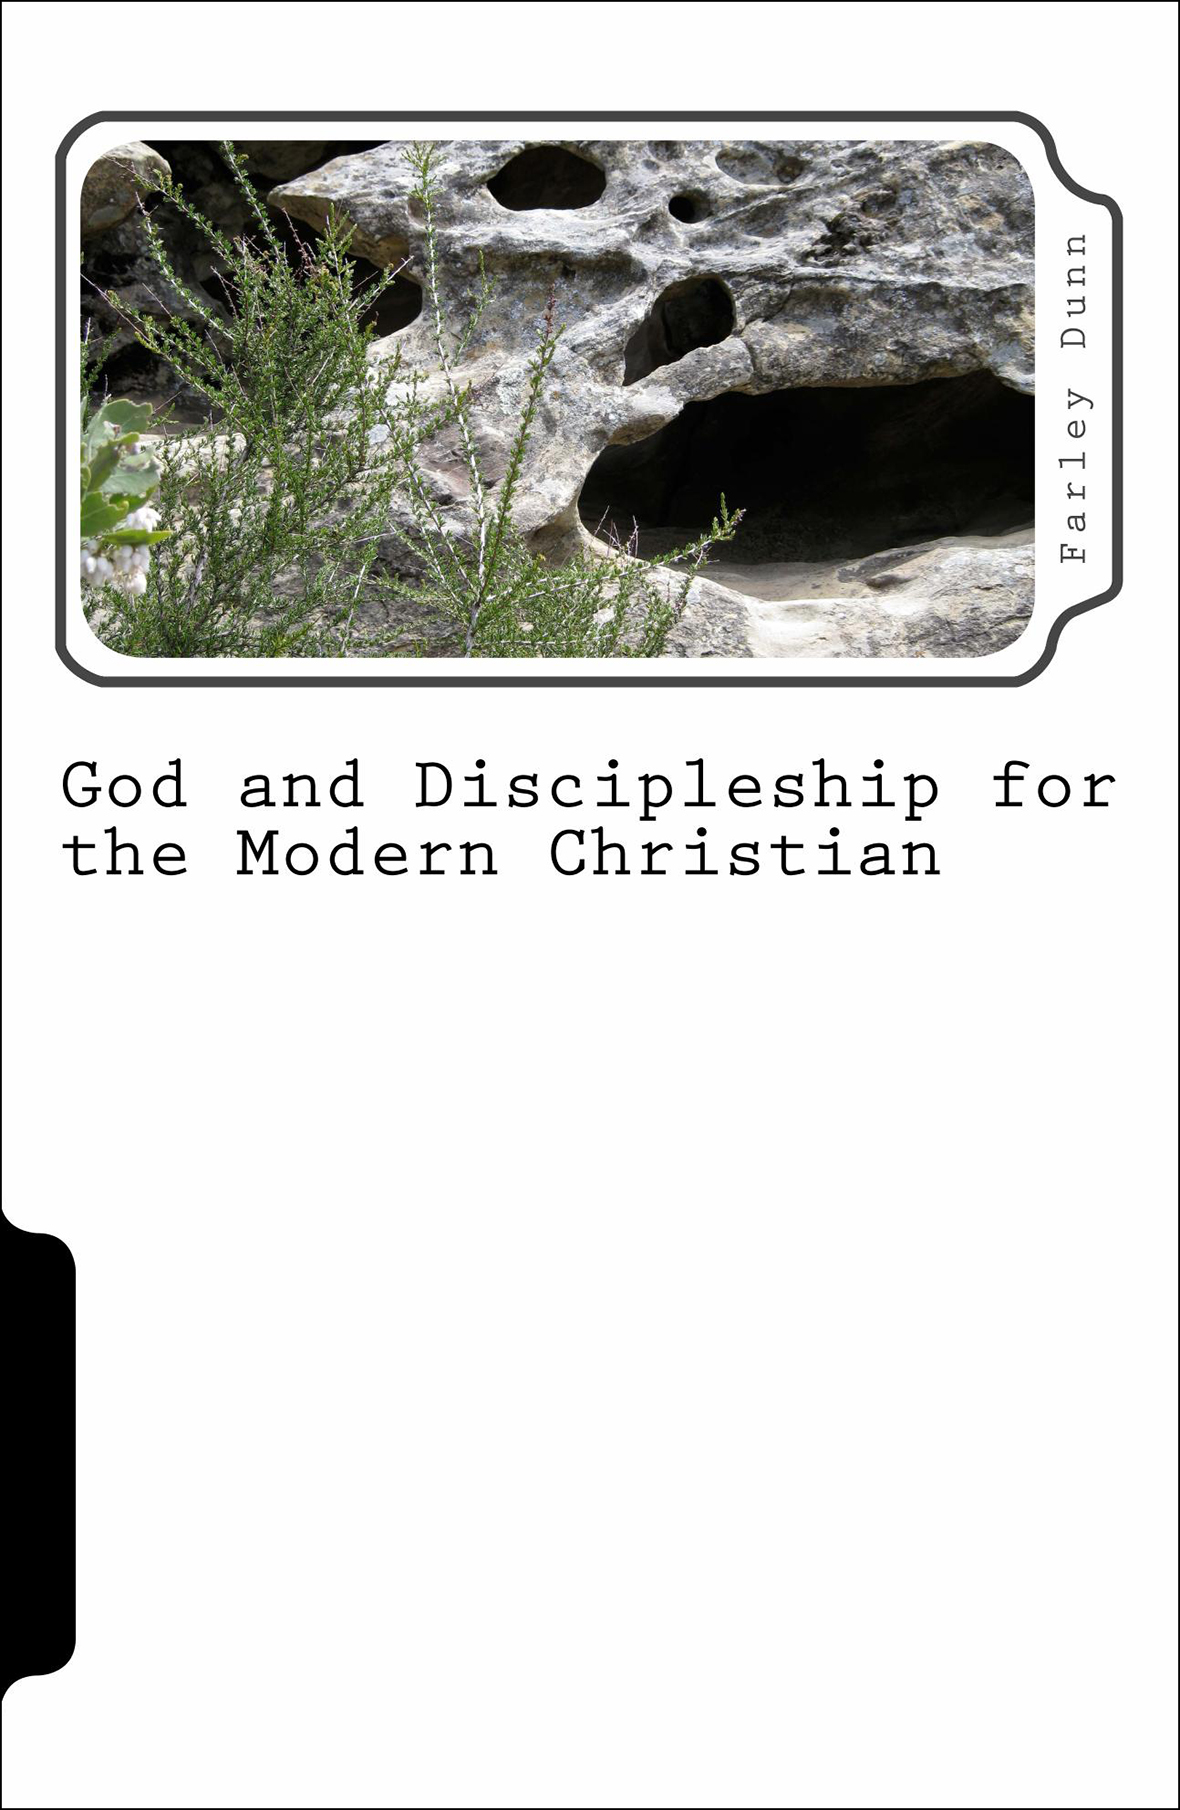 God and Discipleship Cover for web insertion vol 2